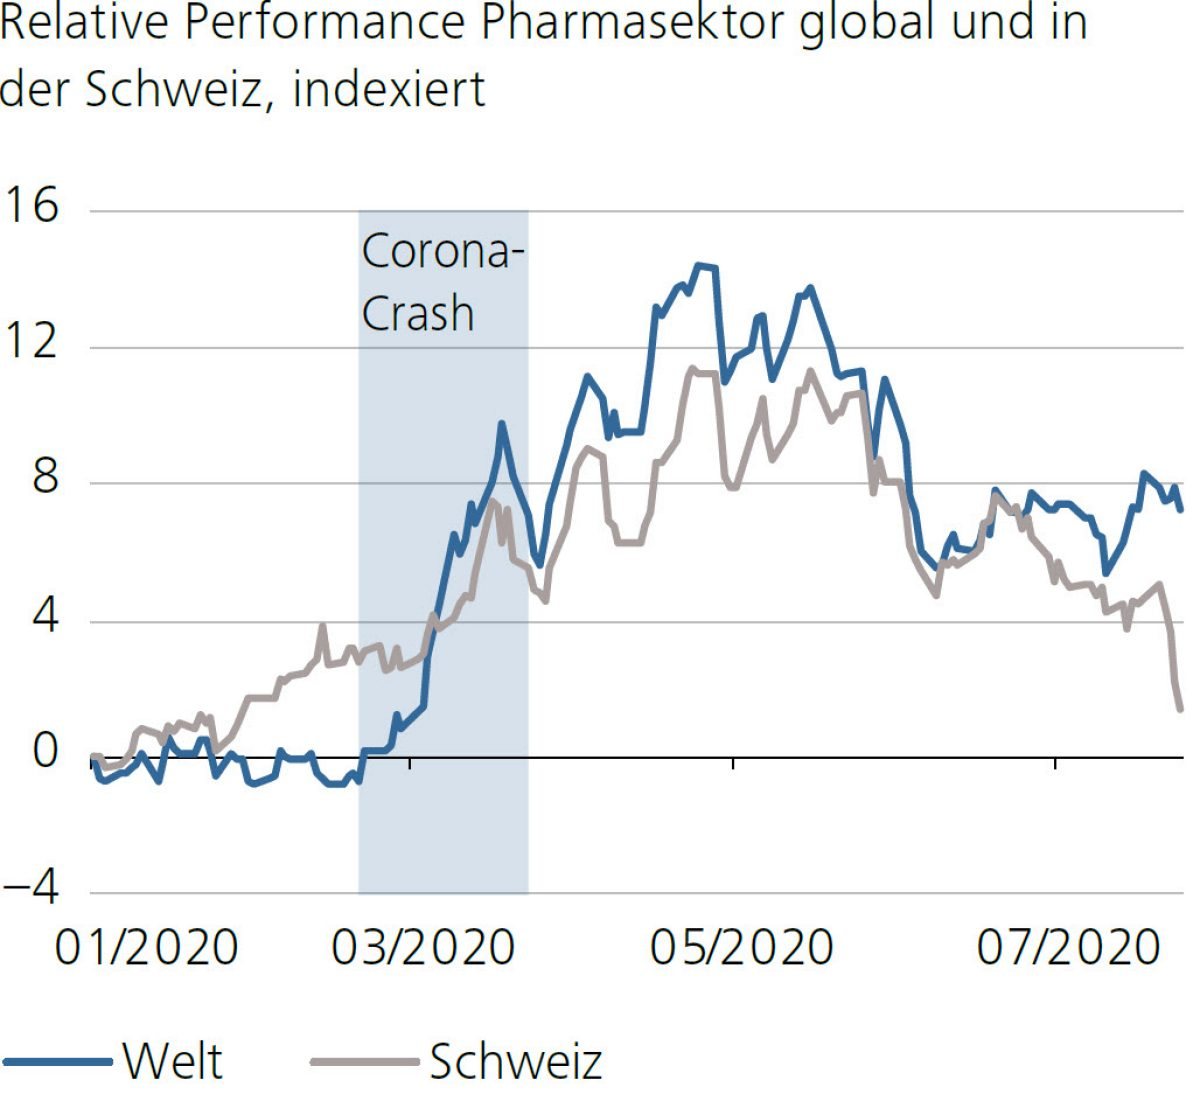 Relative Performance Pharmasektor global und in der Schweiz, indexiert